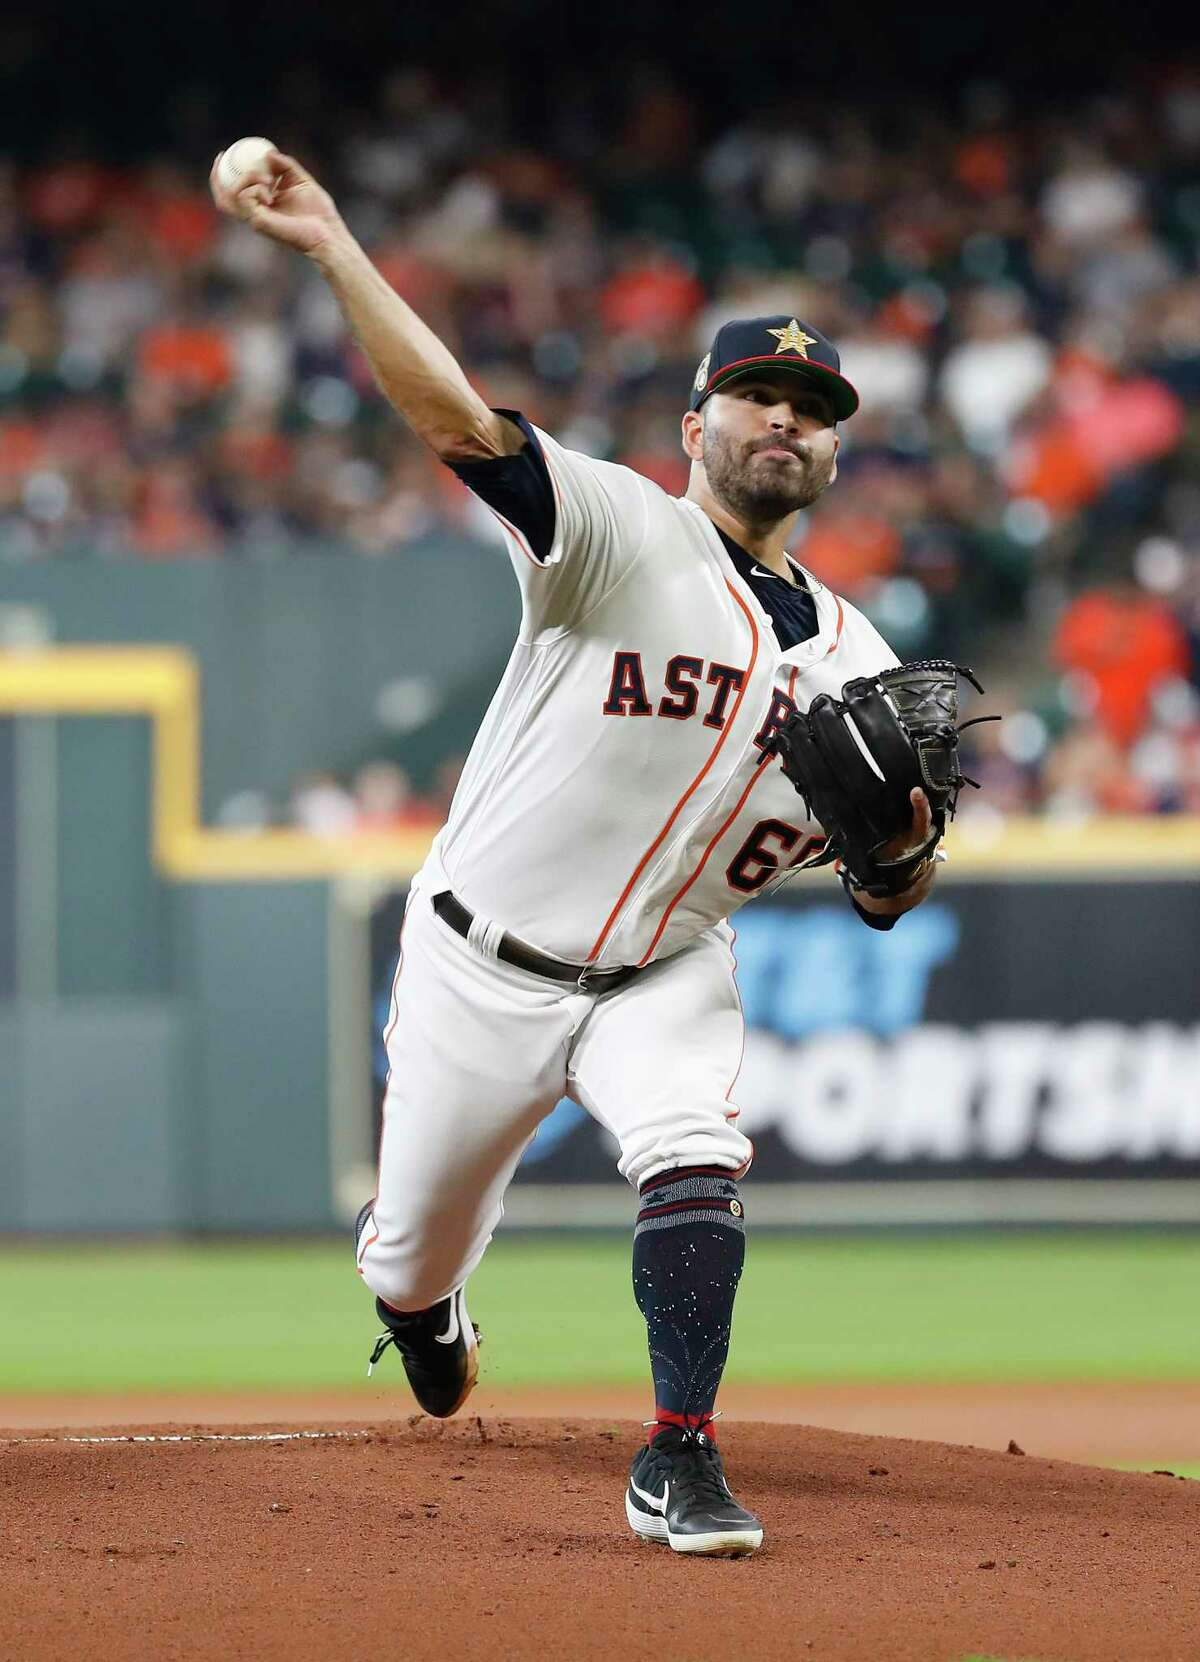 Houston Astros starting pitcher Jose Urquidy (65) pitches during the first inning of an MLB game at Minute Maid Park, Sunday, July 7, 2019, in Houston.